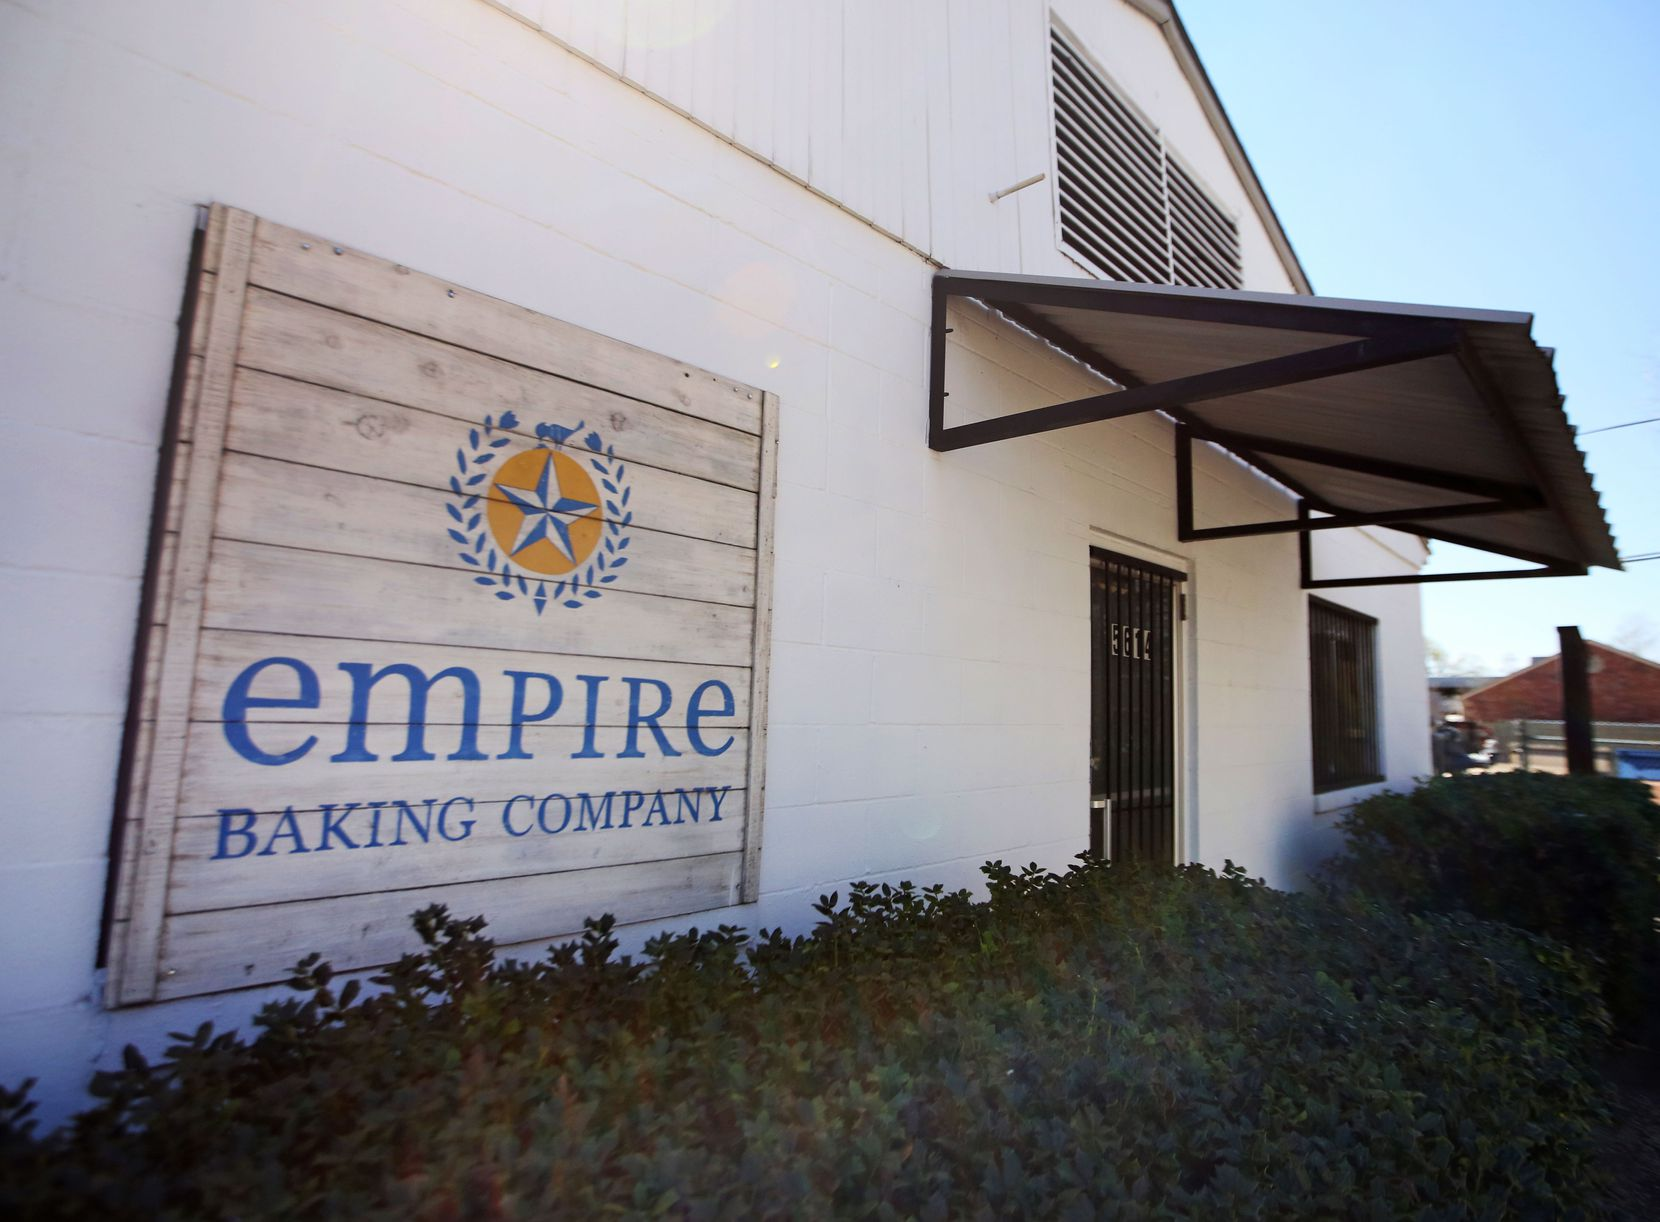 Owner of Empire Baking Company, Meaders Ozarow, said she considers herself one of the lucky ones. Her business is one of the few to receive a PPP loan, which she is using to pay all 65 of her employees. (Louis DeLuca/The Dallas Morning News)